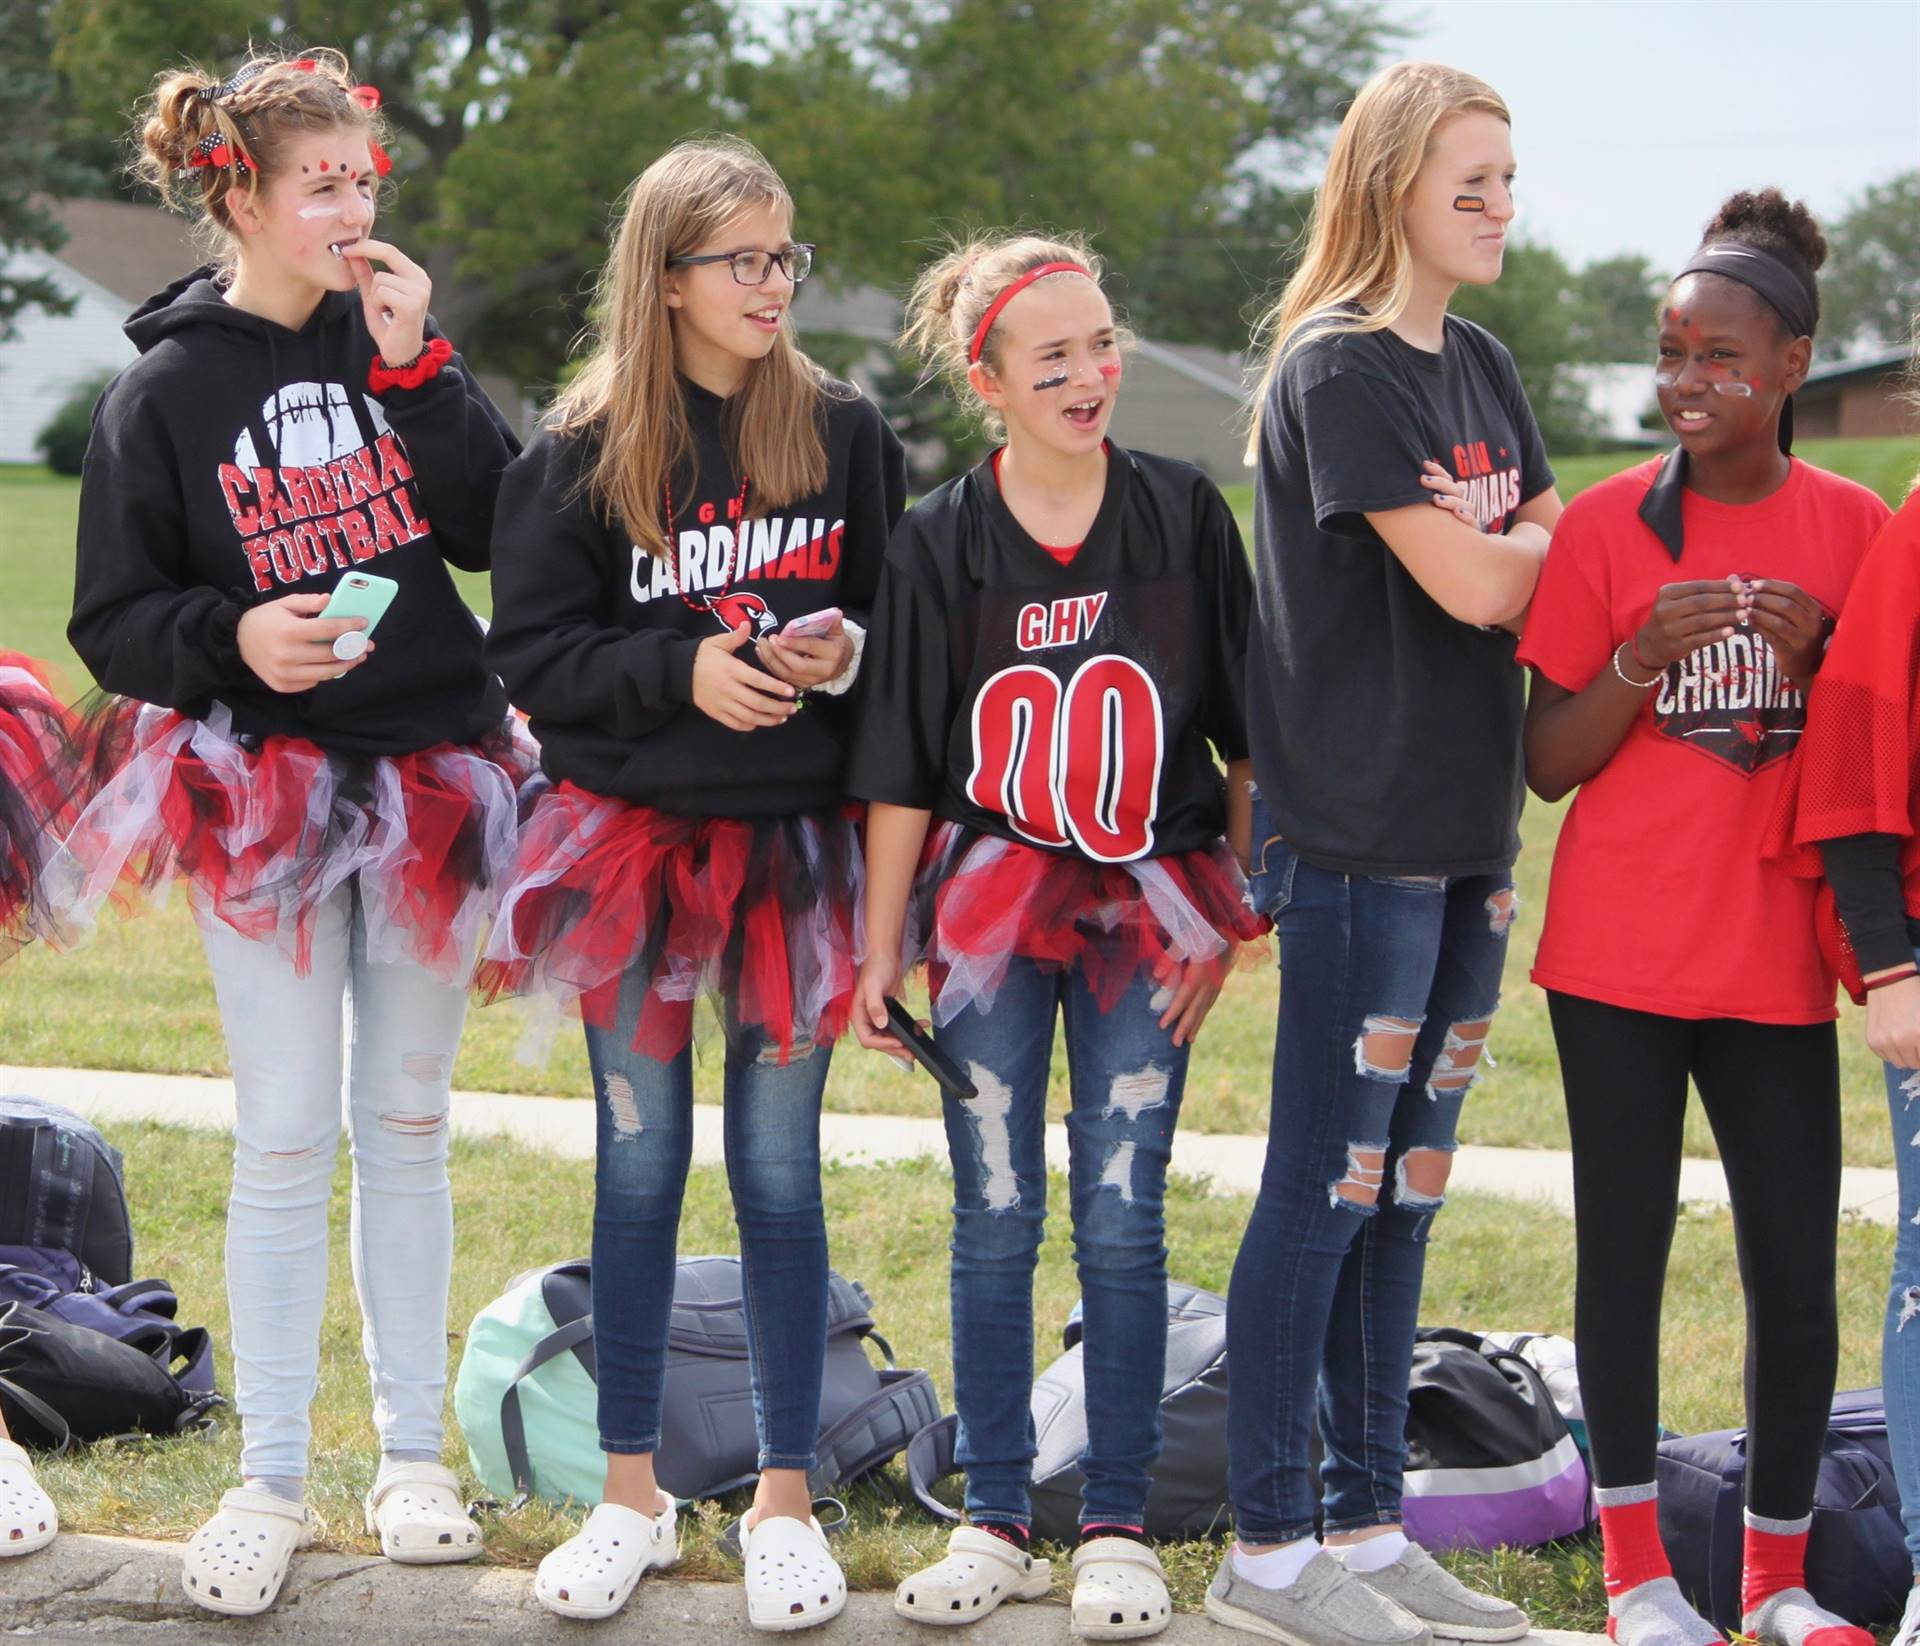 five middle school girls watching homecoming parade